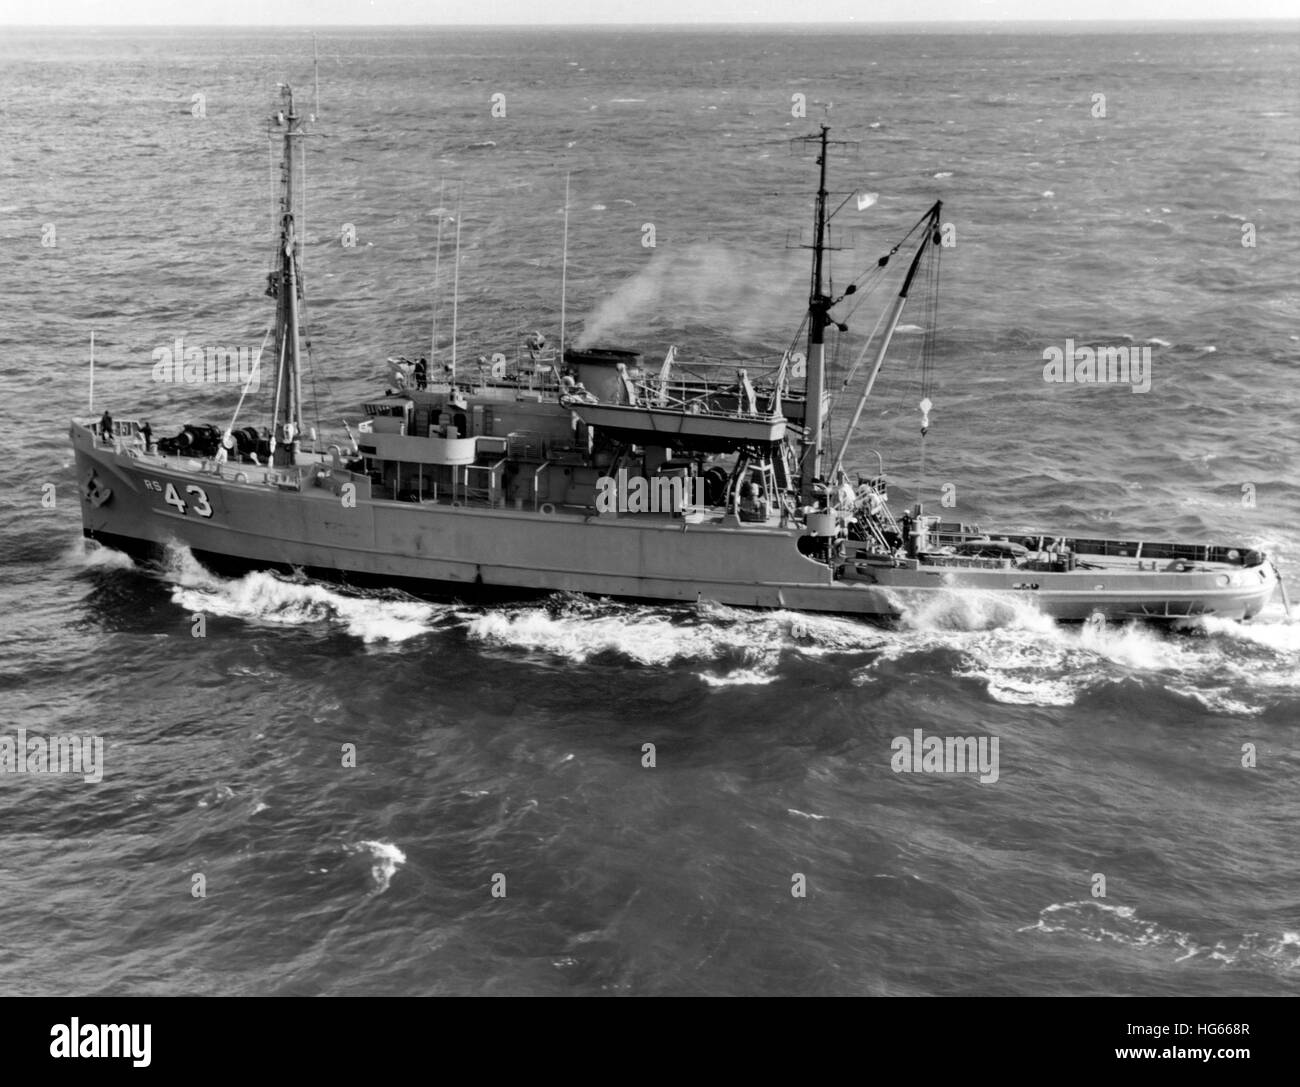 Salvage ship USS Recovery (ARS-43) underway, 1969. - Stock Image